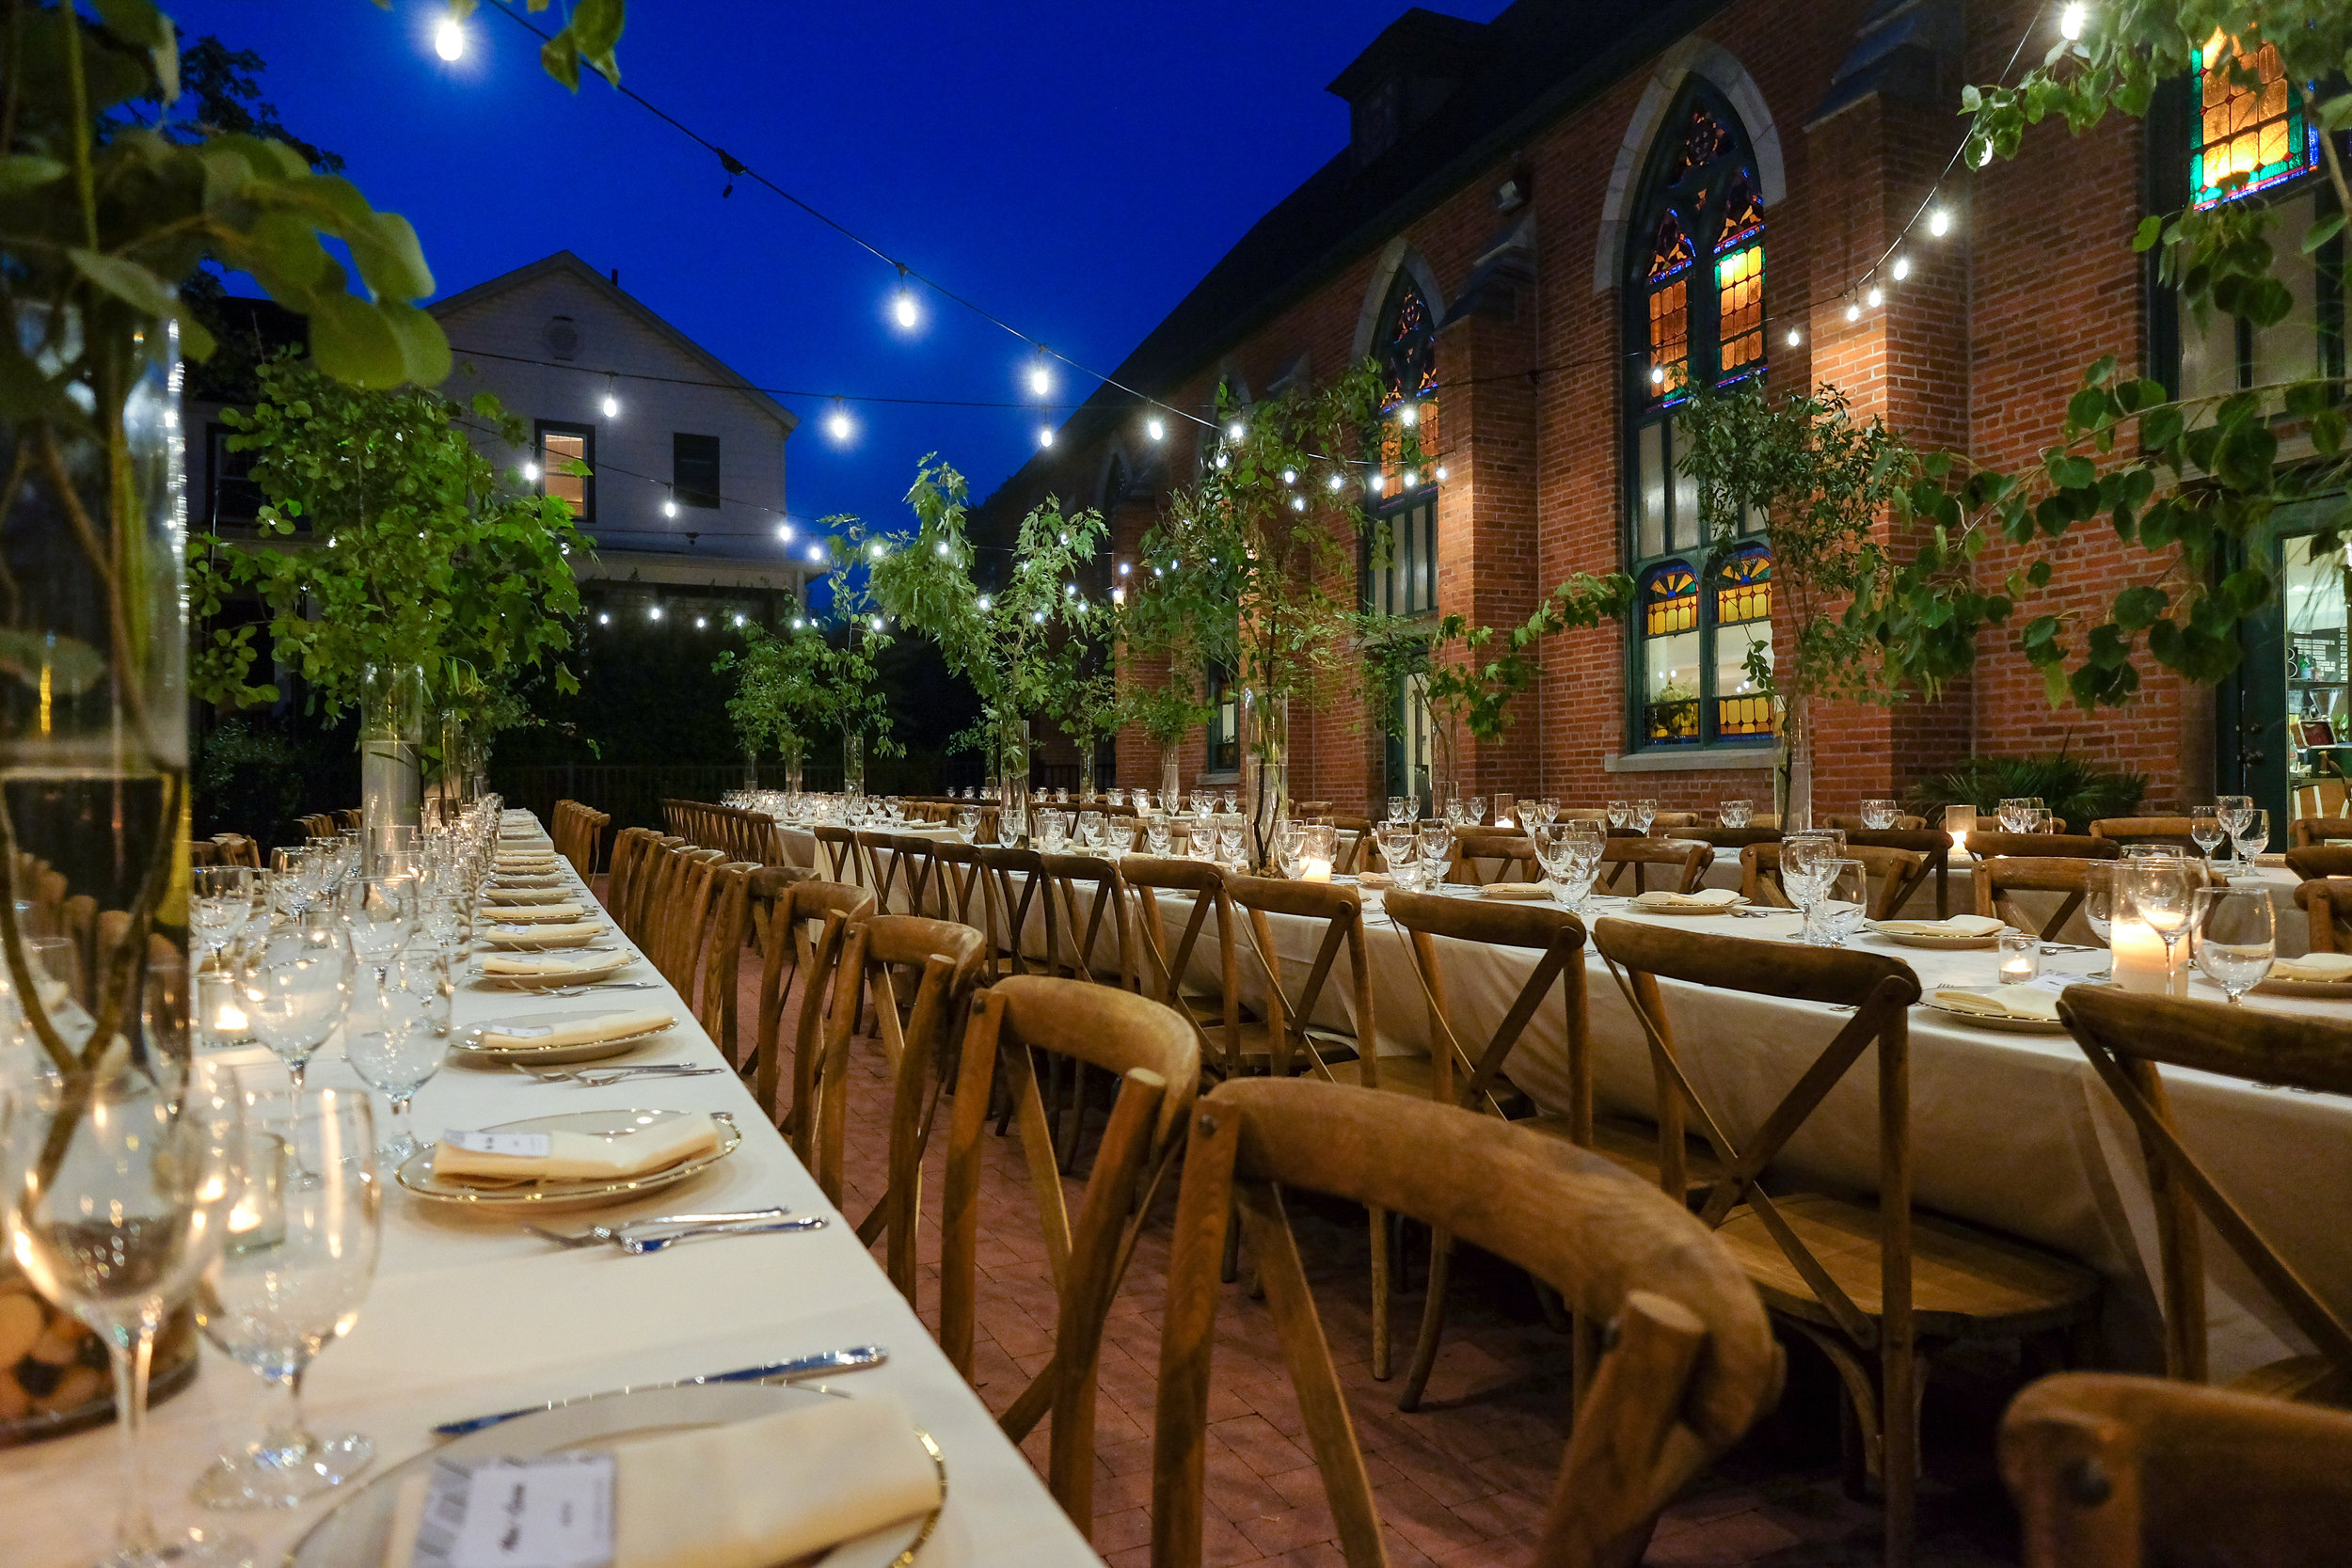 Dine Under the Stars - Wrapping around the building is our outdoor patio that allows for guests to take in the charm of the Village of Tivoli while dining alfresco or sipping cocktails before dinner is served. With room for over 200 guests, the expansive patio can be used in conjunction with The Sanctuary indoors for seated dinners, post ceremony receptions, cocktail hours, and much more. A flexible space with countless layout possibilities.